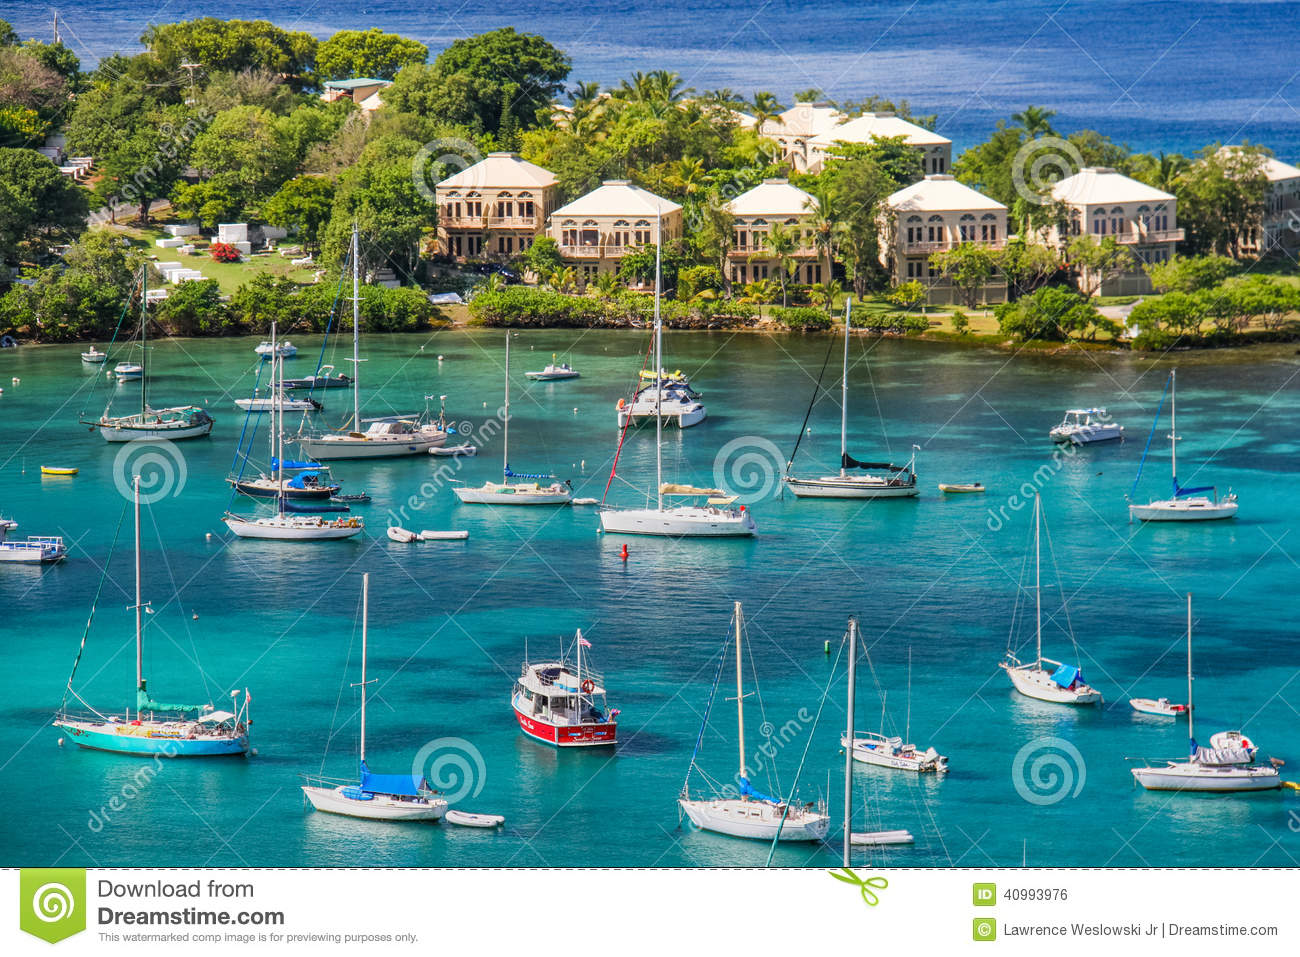 my dream meal at the cruz bay in st john of the usvi St john catering & mathayom private chefs has everything you need to host the  destination  fine dining or casual  party rentals  servicing st thomas and  st john, usvi in 2018, we will be opening a restaurant/bar in cruz bay (the   our goal is to take your dream and turn it into an island wedding dream come  true.